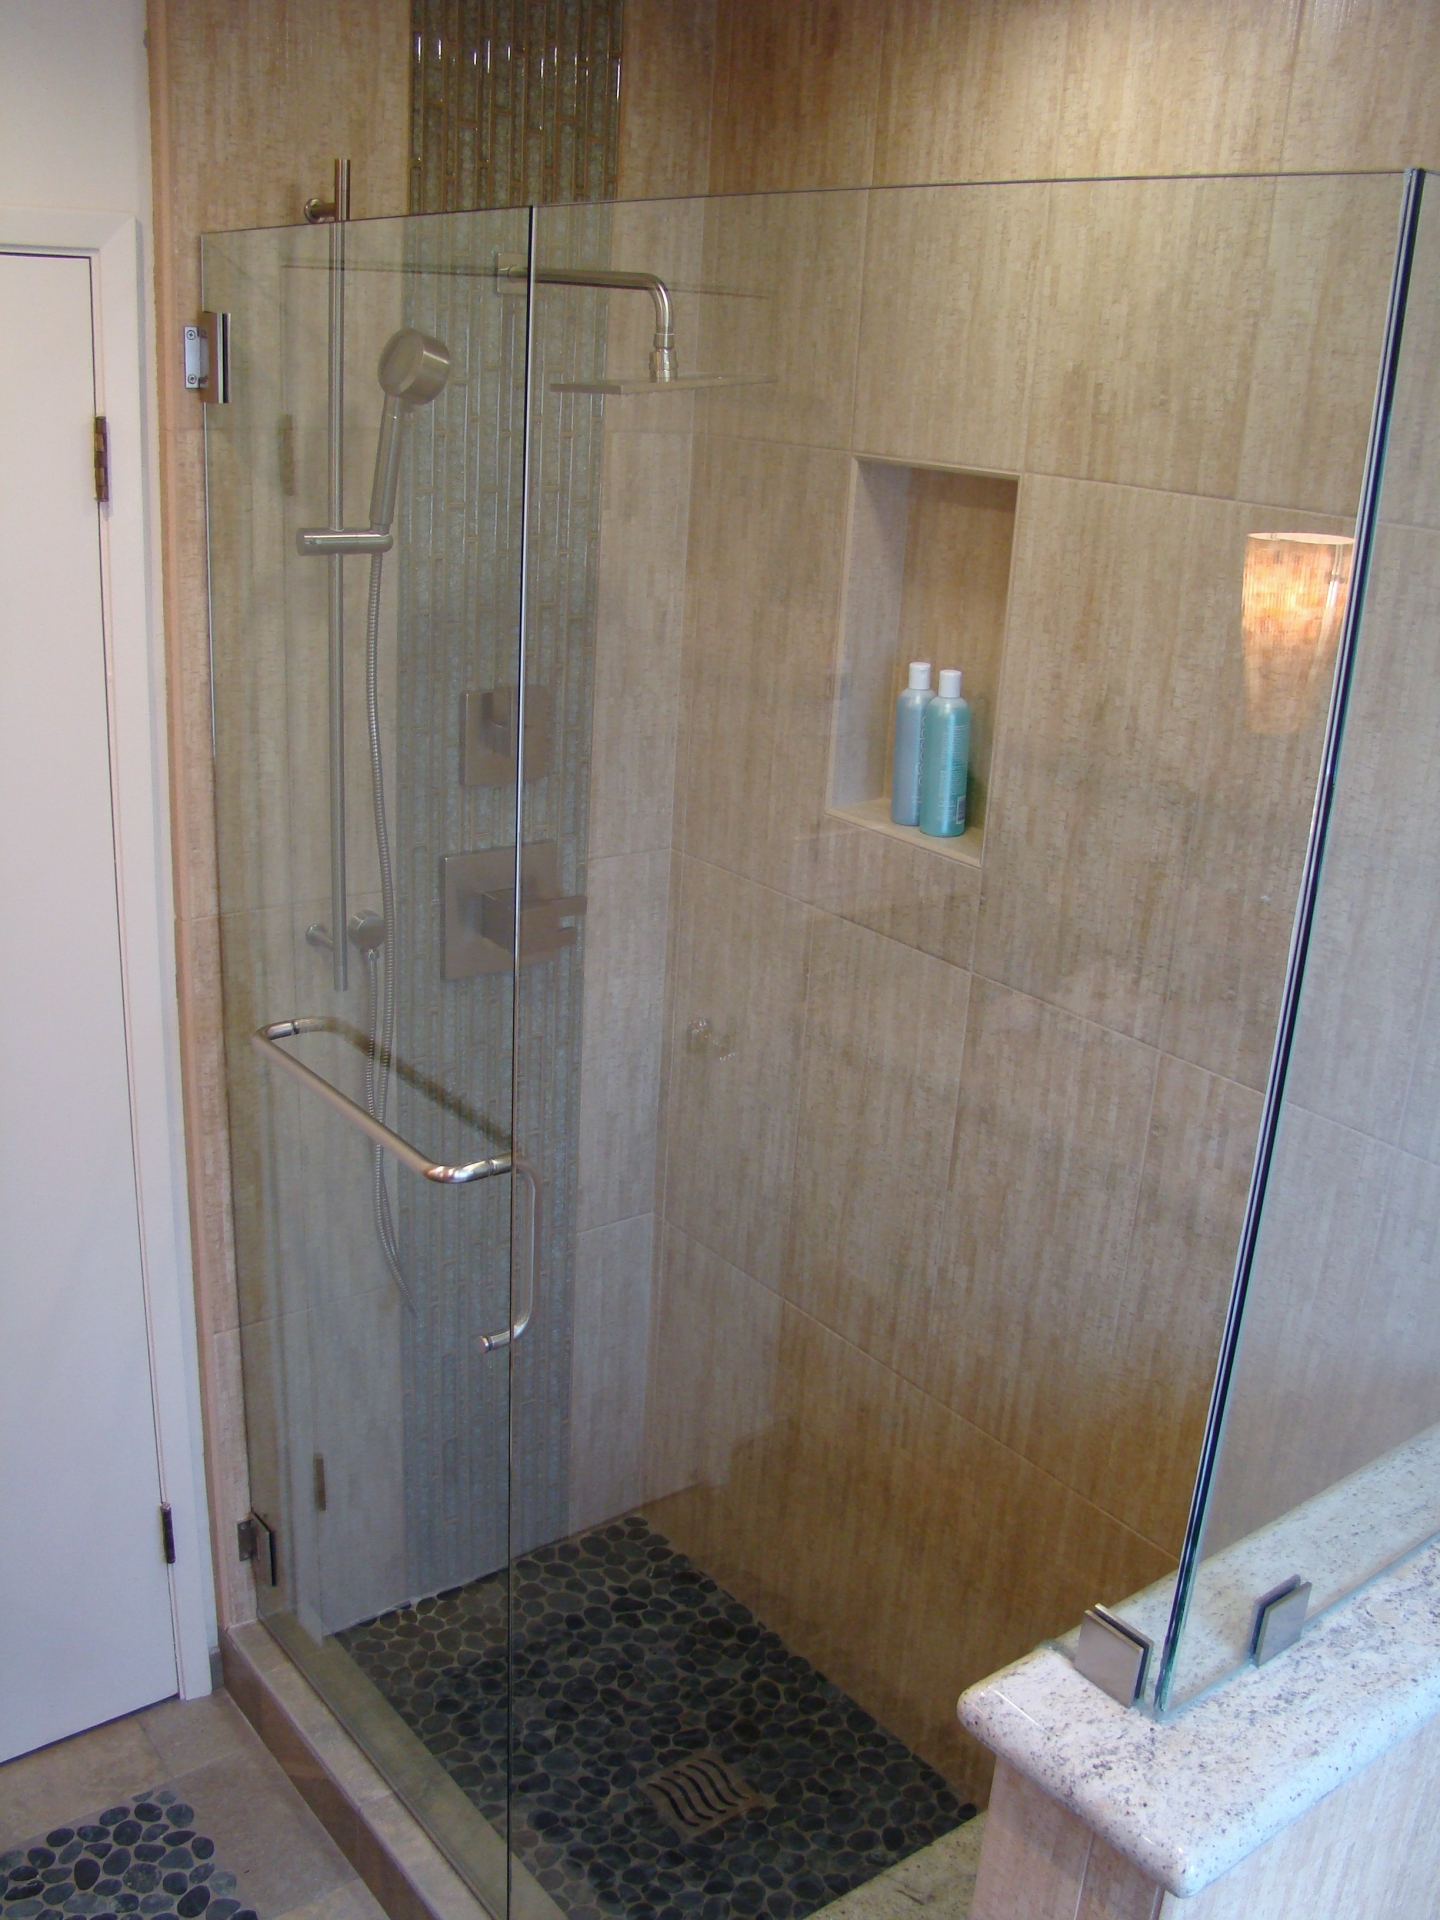 Fiorito Interior Design, interior design, remodel, bathroom, tropical, shower, pebble shower pan, crackle glass mosaic, modern shower head, niche